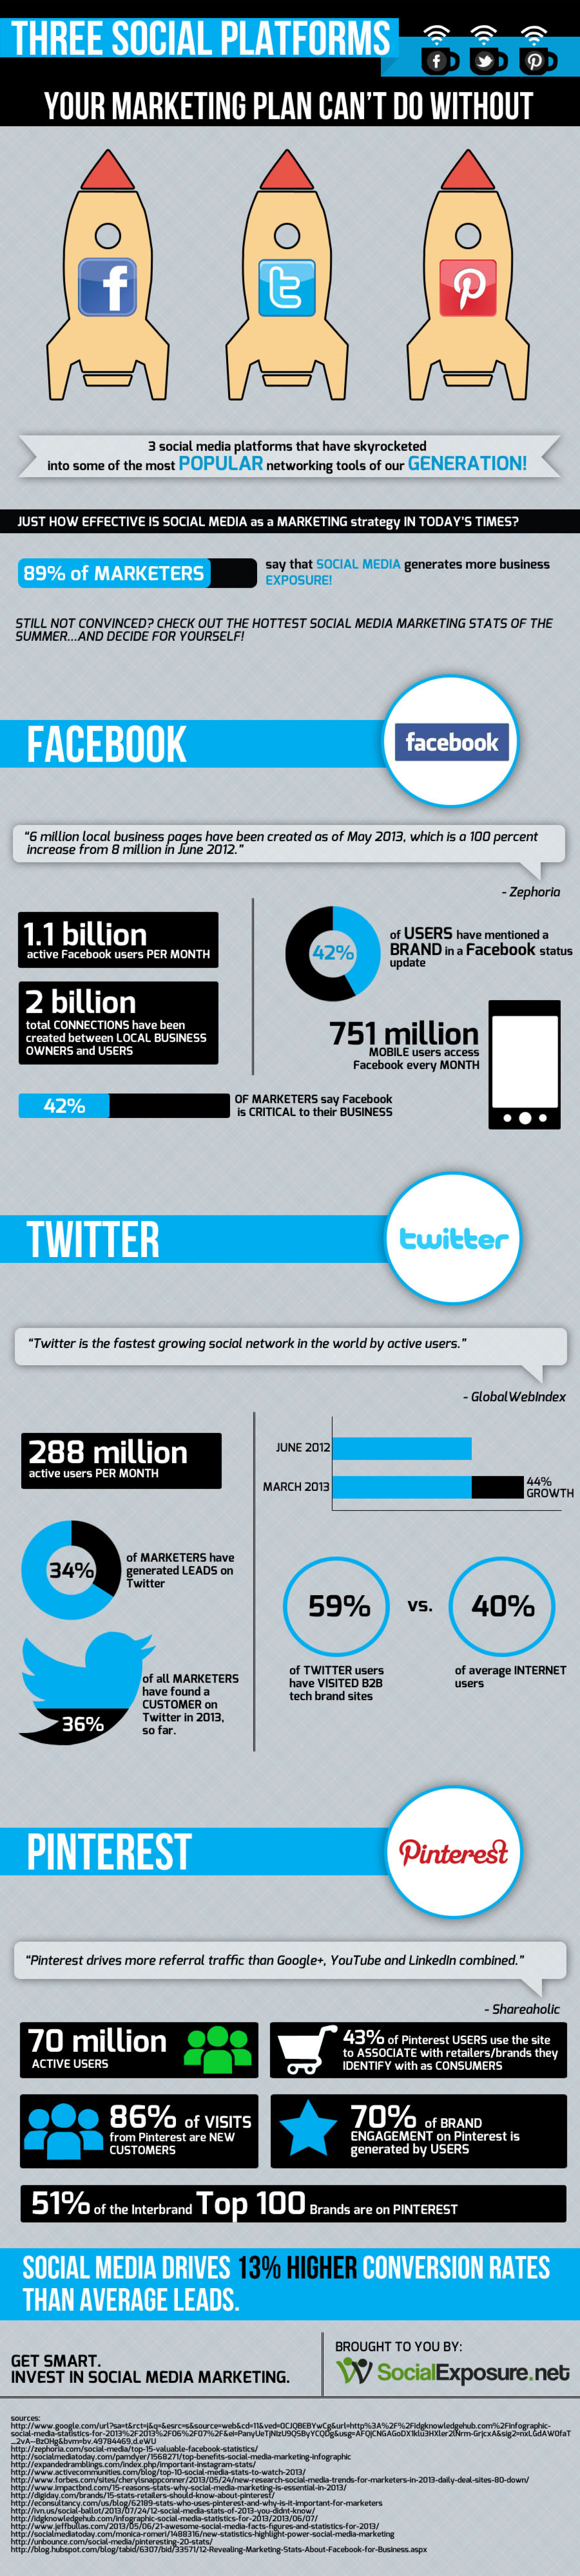 Heat Up Your Marketing Campaign This Summer: Utilize Social Media! Infographic